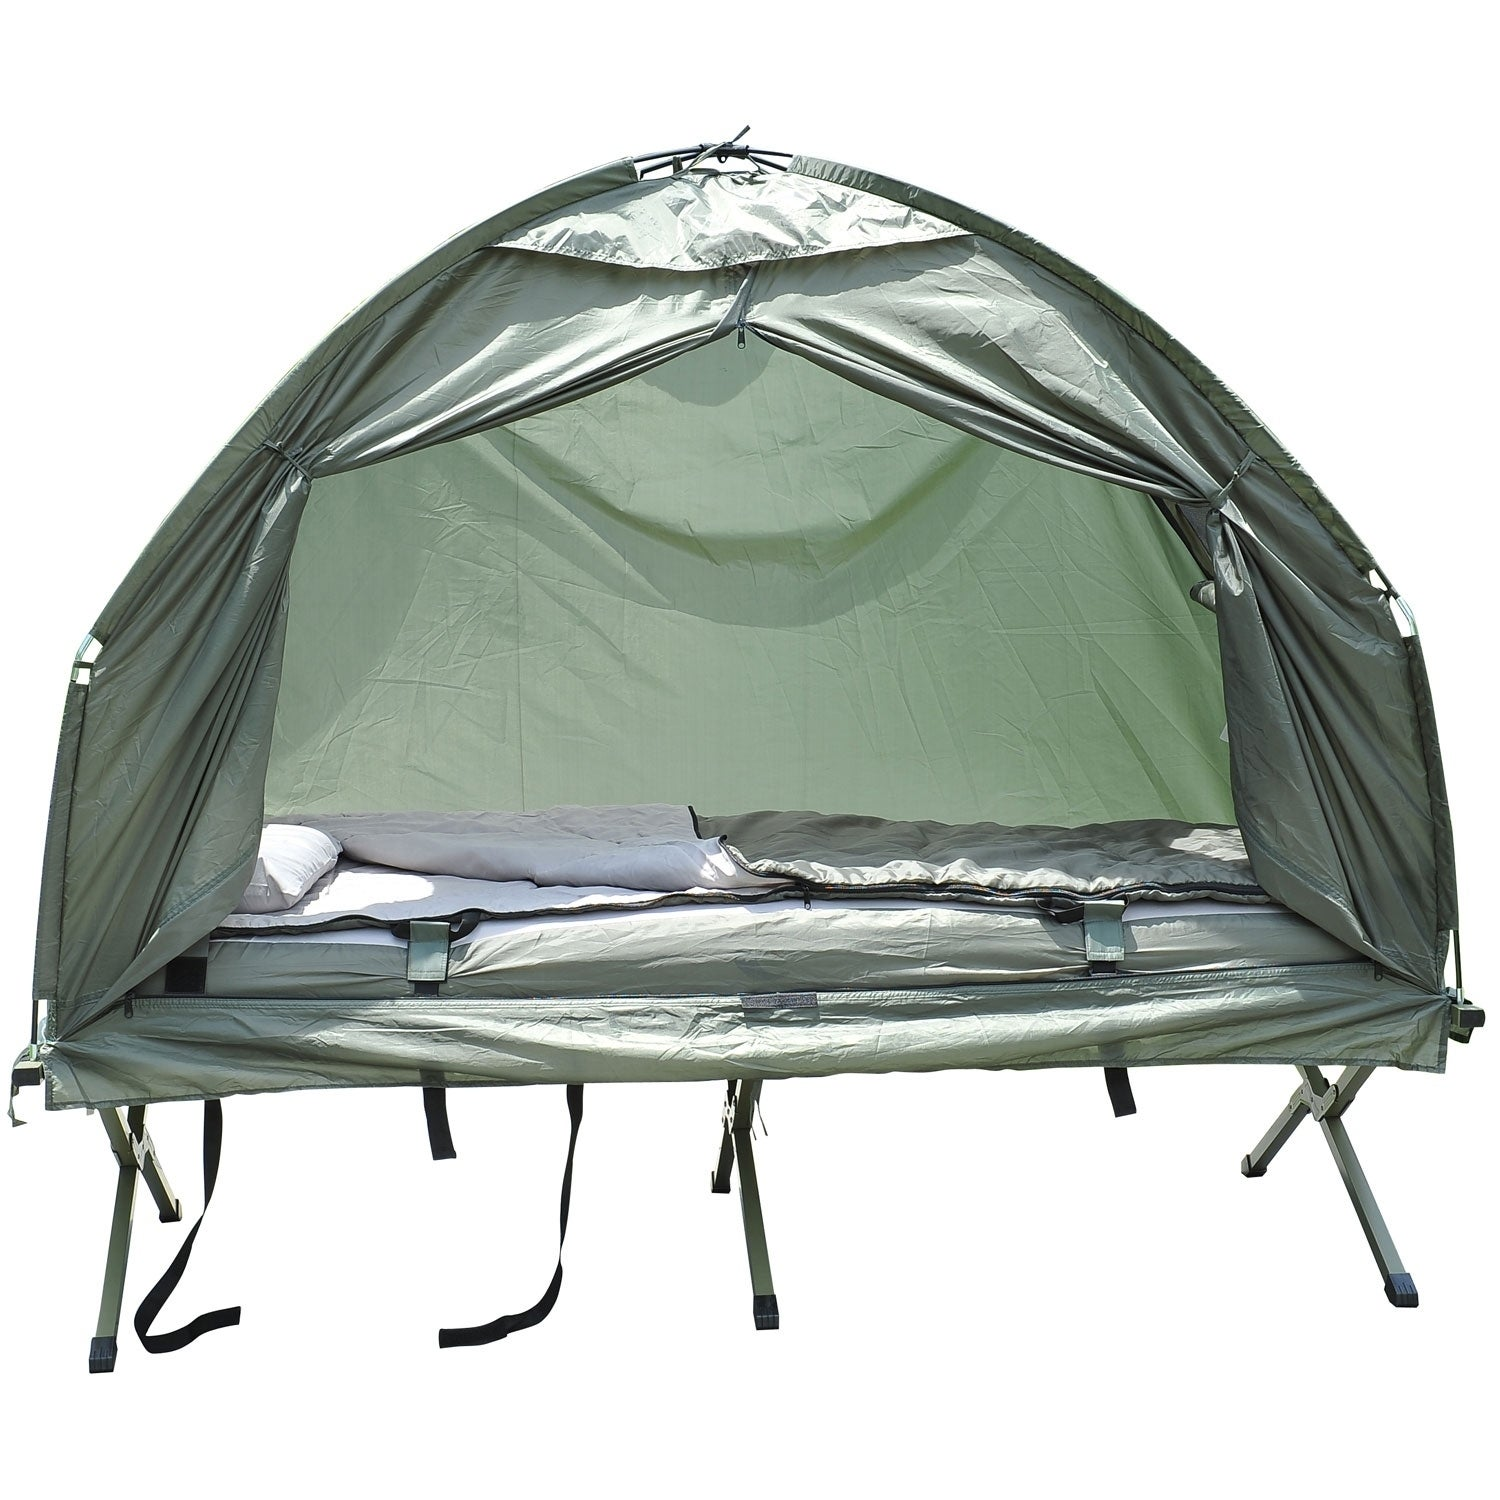 Outsunny Compact Portable Pop-Up Tent